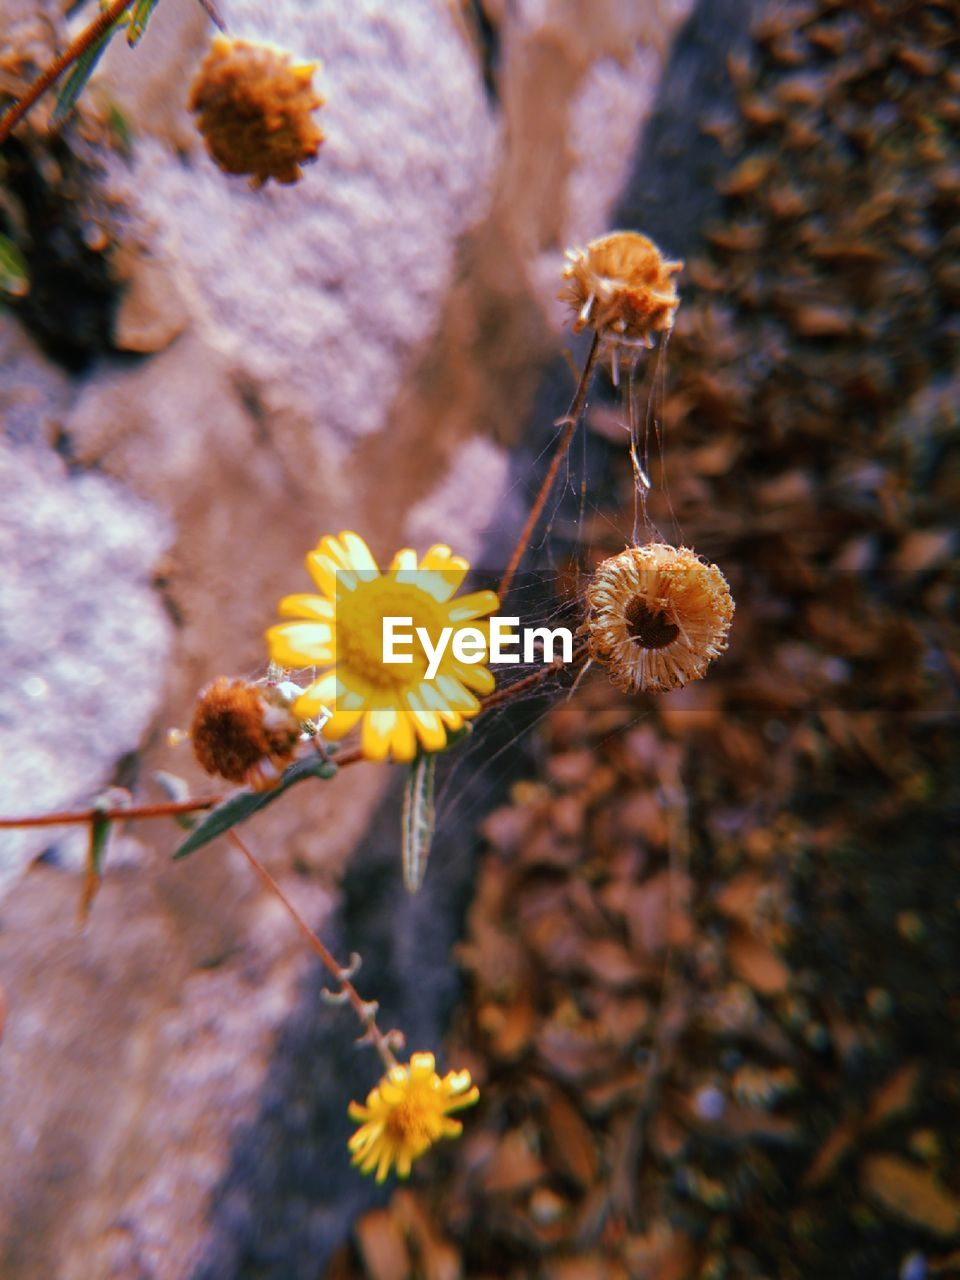 flowering plant, fragility, flower, vulnerability, plant, close-up, growth, beauty in nature, nature, freshness, focus on foreground, no people, selective focus, day, flower head, inflorescence, yellow, petal, outdoors, botany, pollen, spring